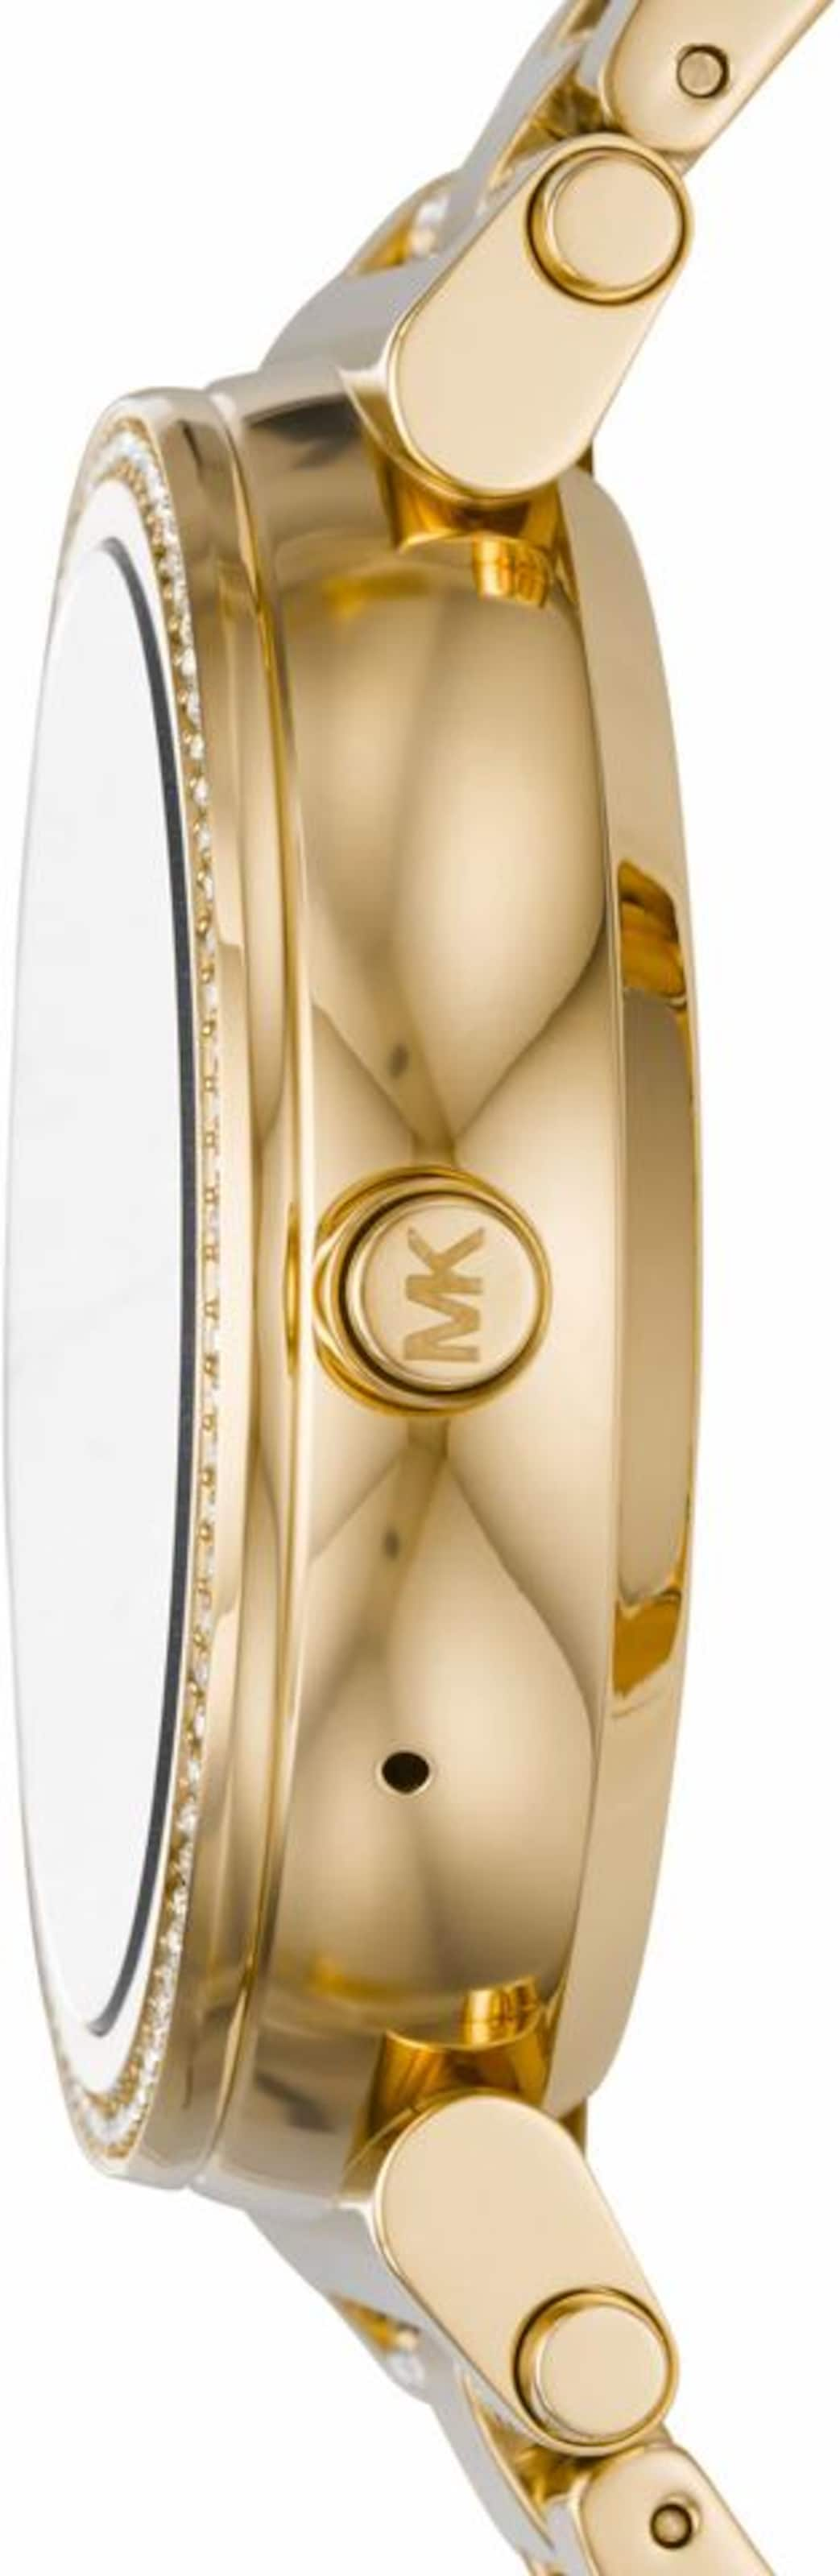 Michael Kors ACCESS SOFIE, MKT5023 Smartwatch (Android Wear)